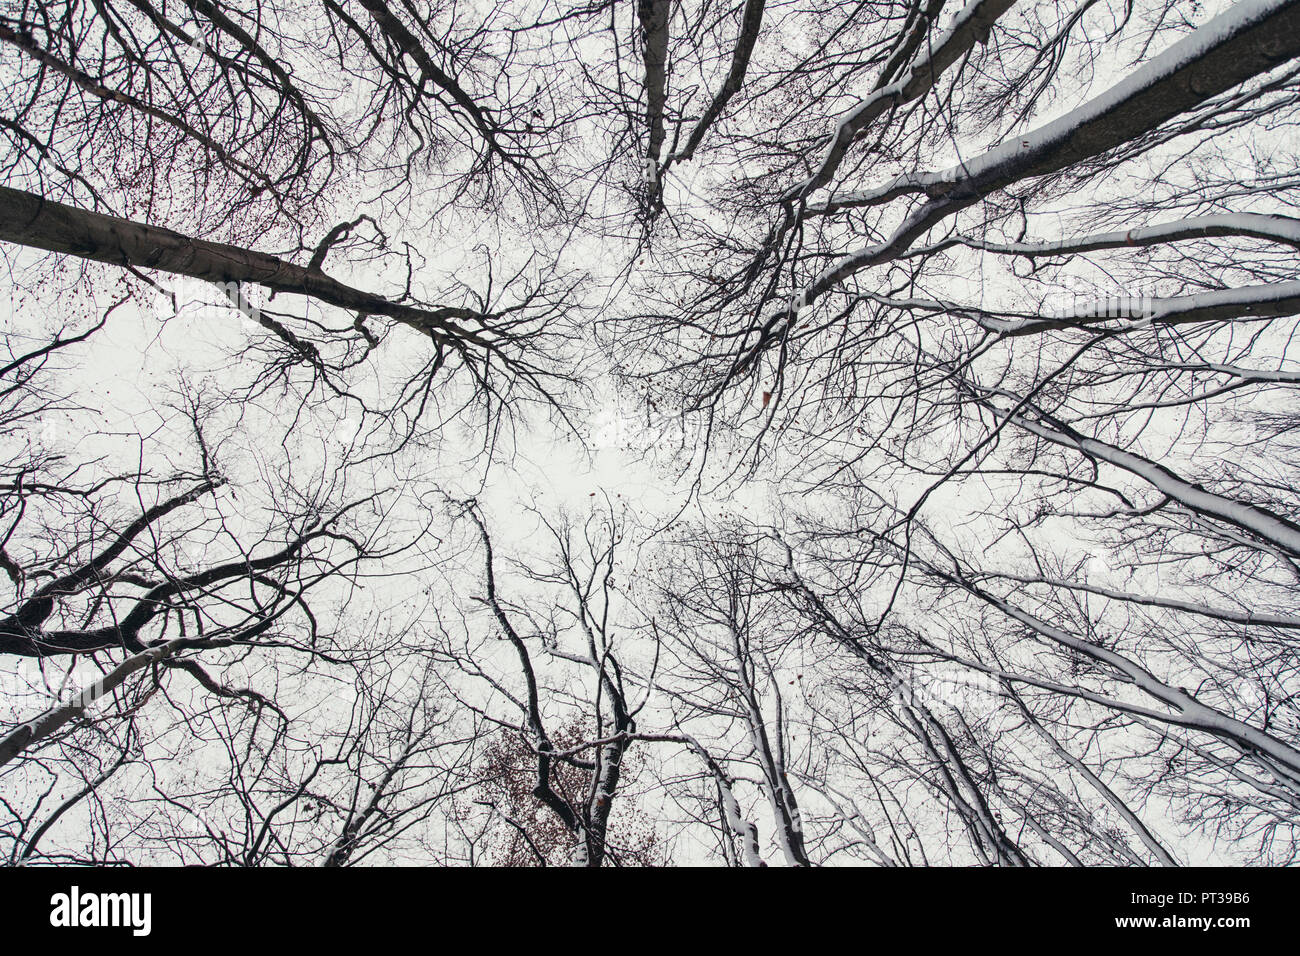 Winter sky in December with leafless beeches and snow - Stock Image